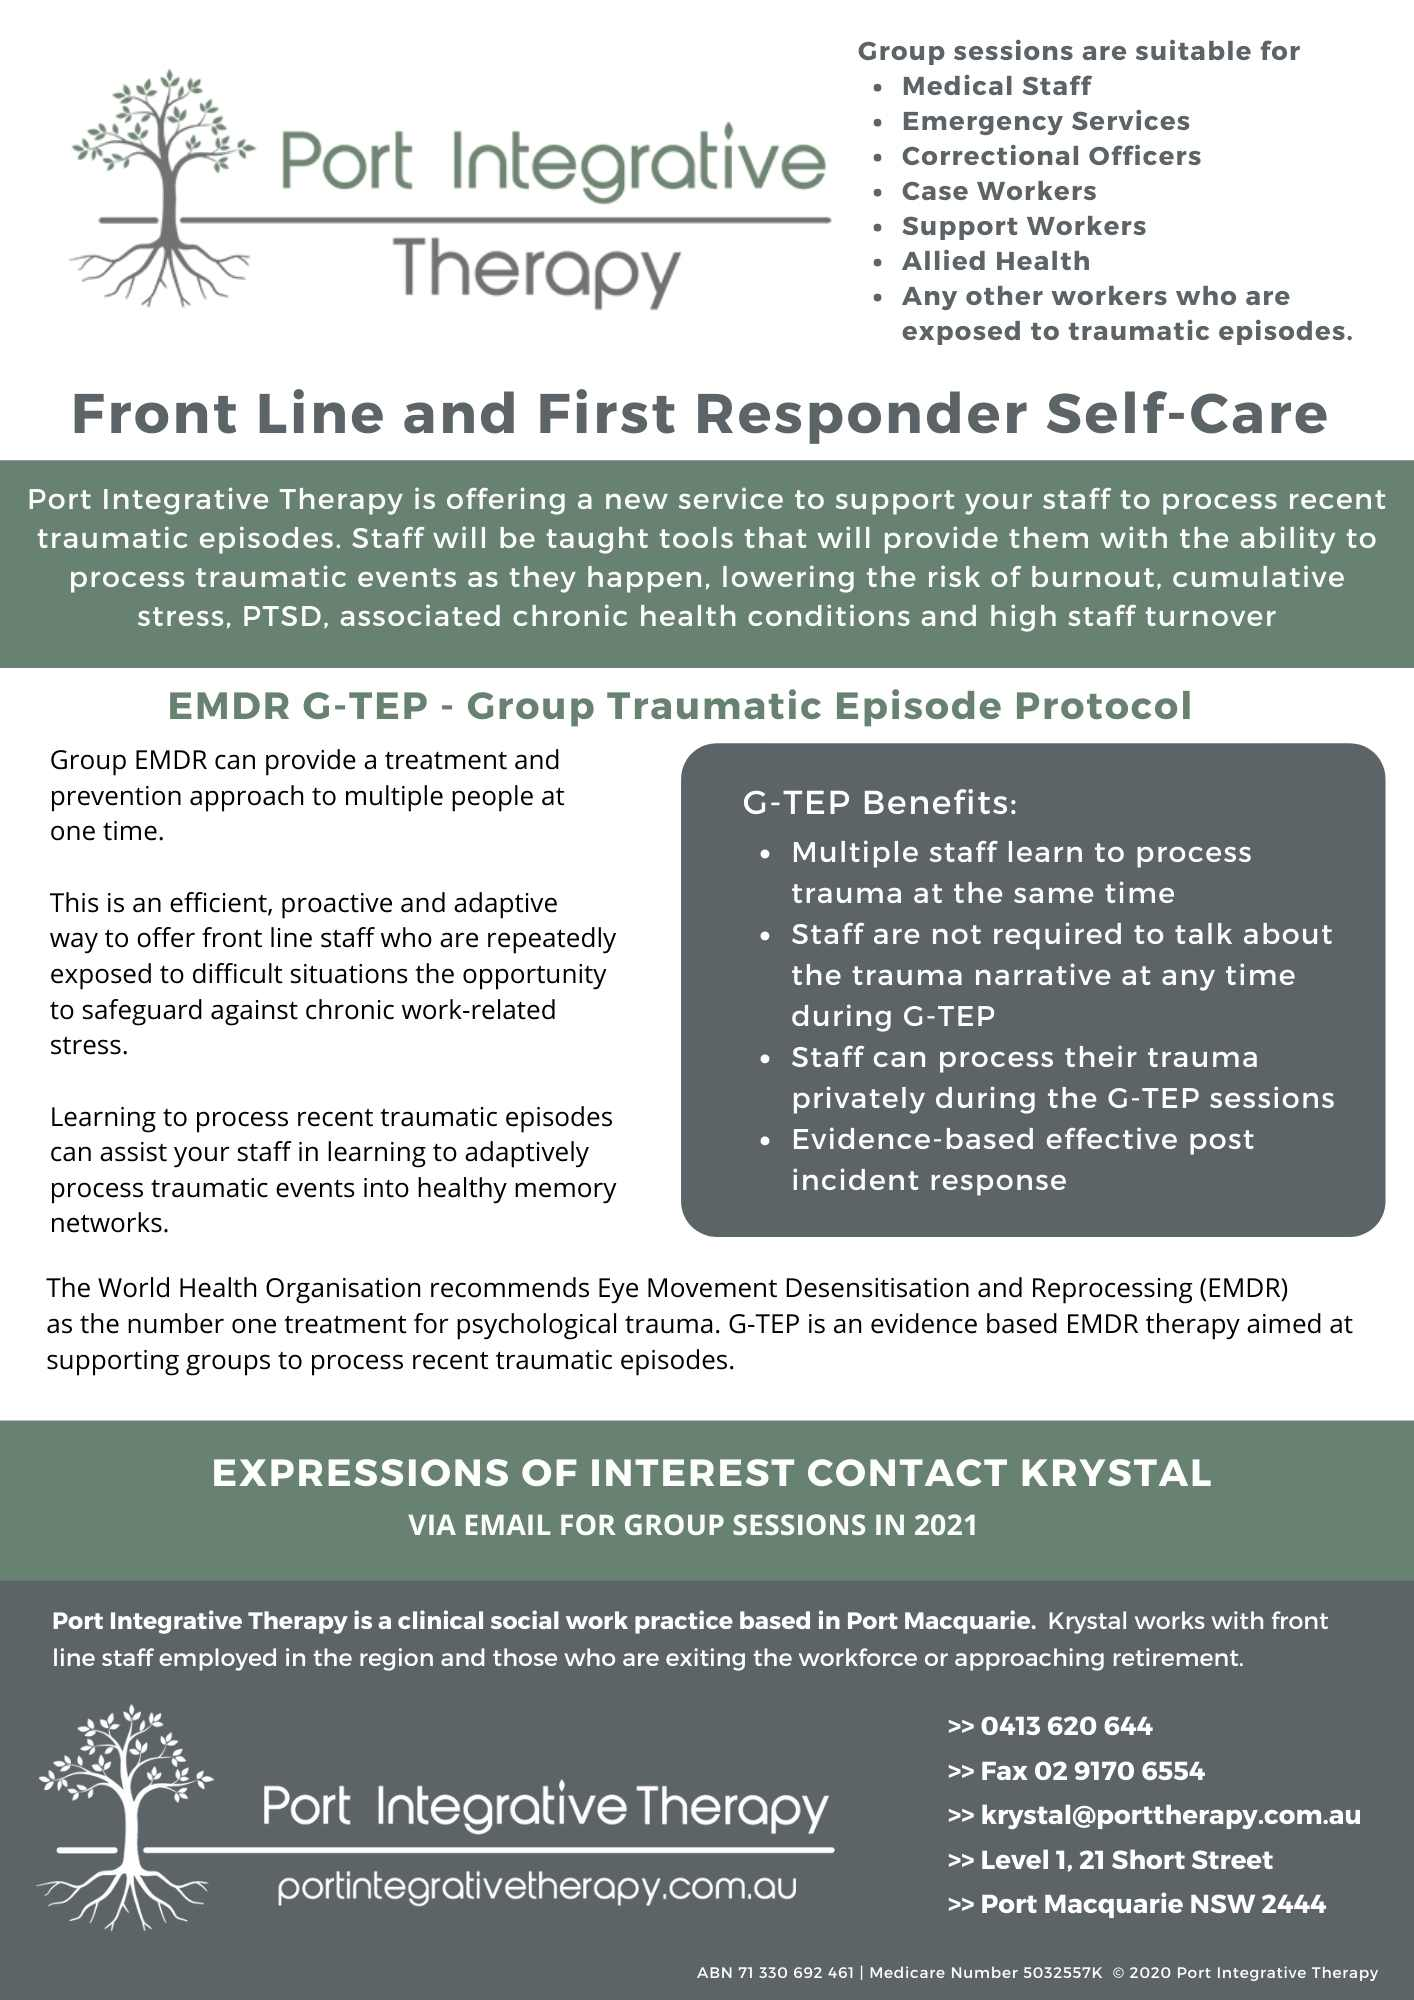 First Responders Self Care A4 Flyer